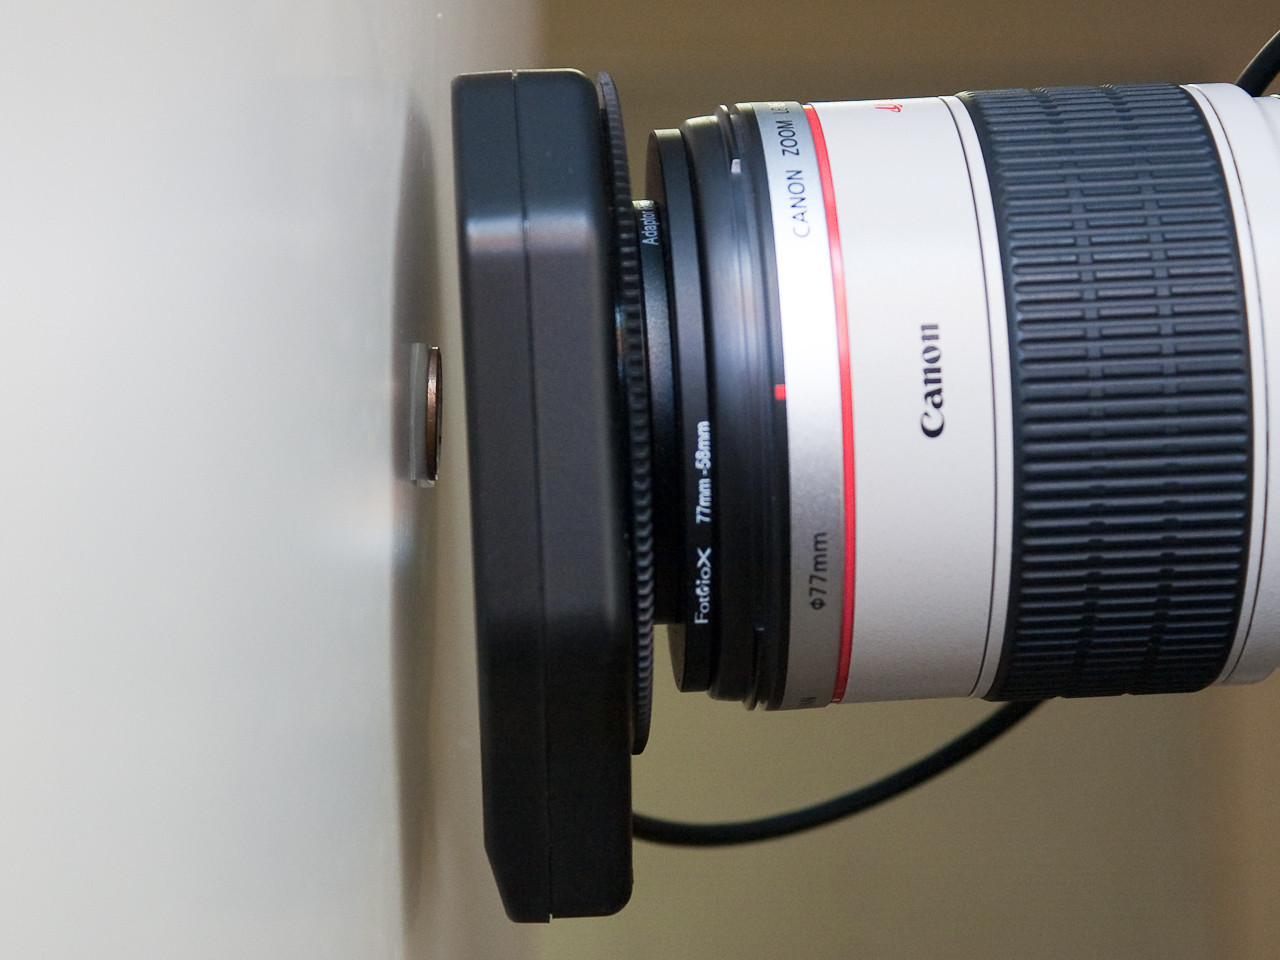 Working distance with the lens at 90mm